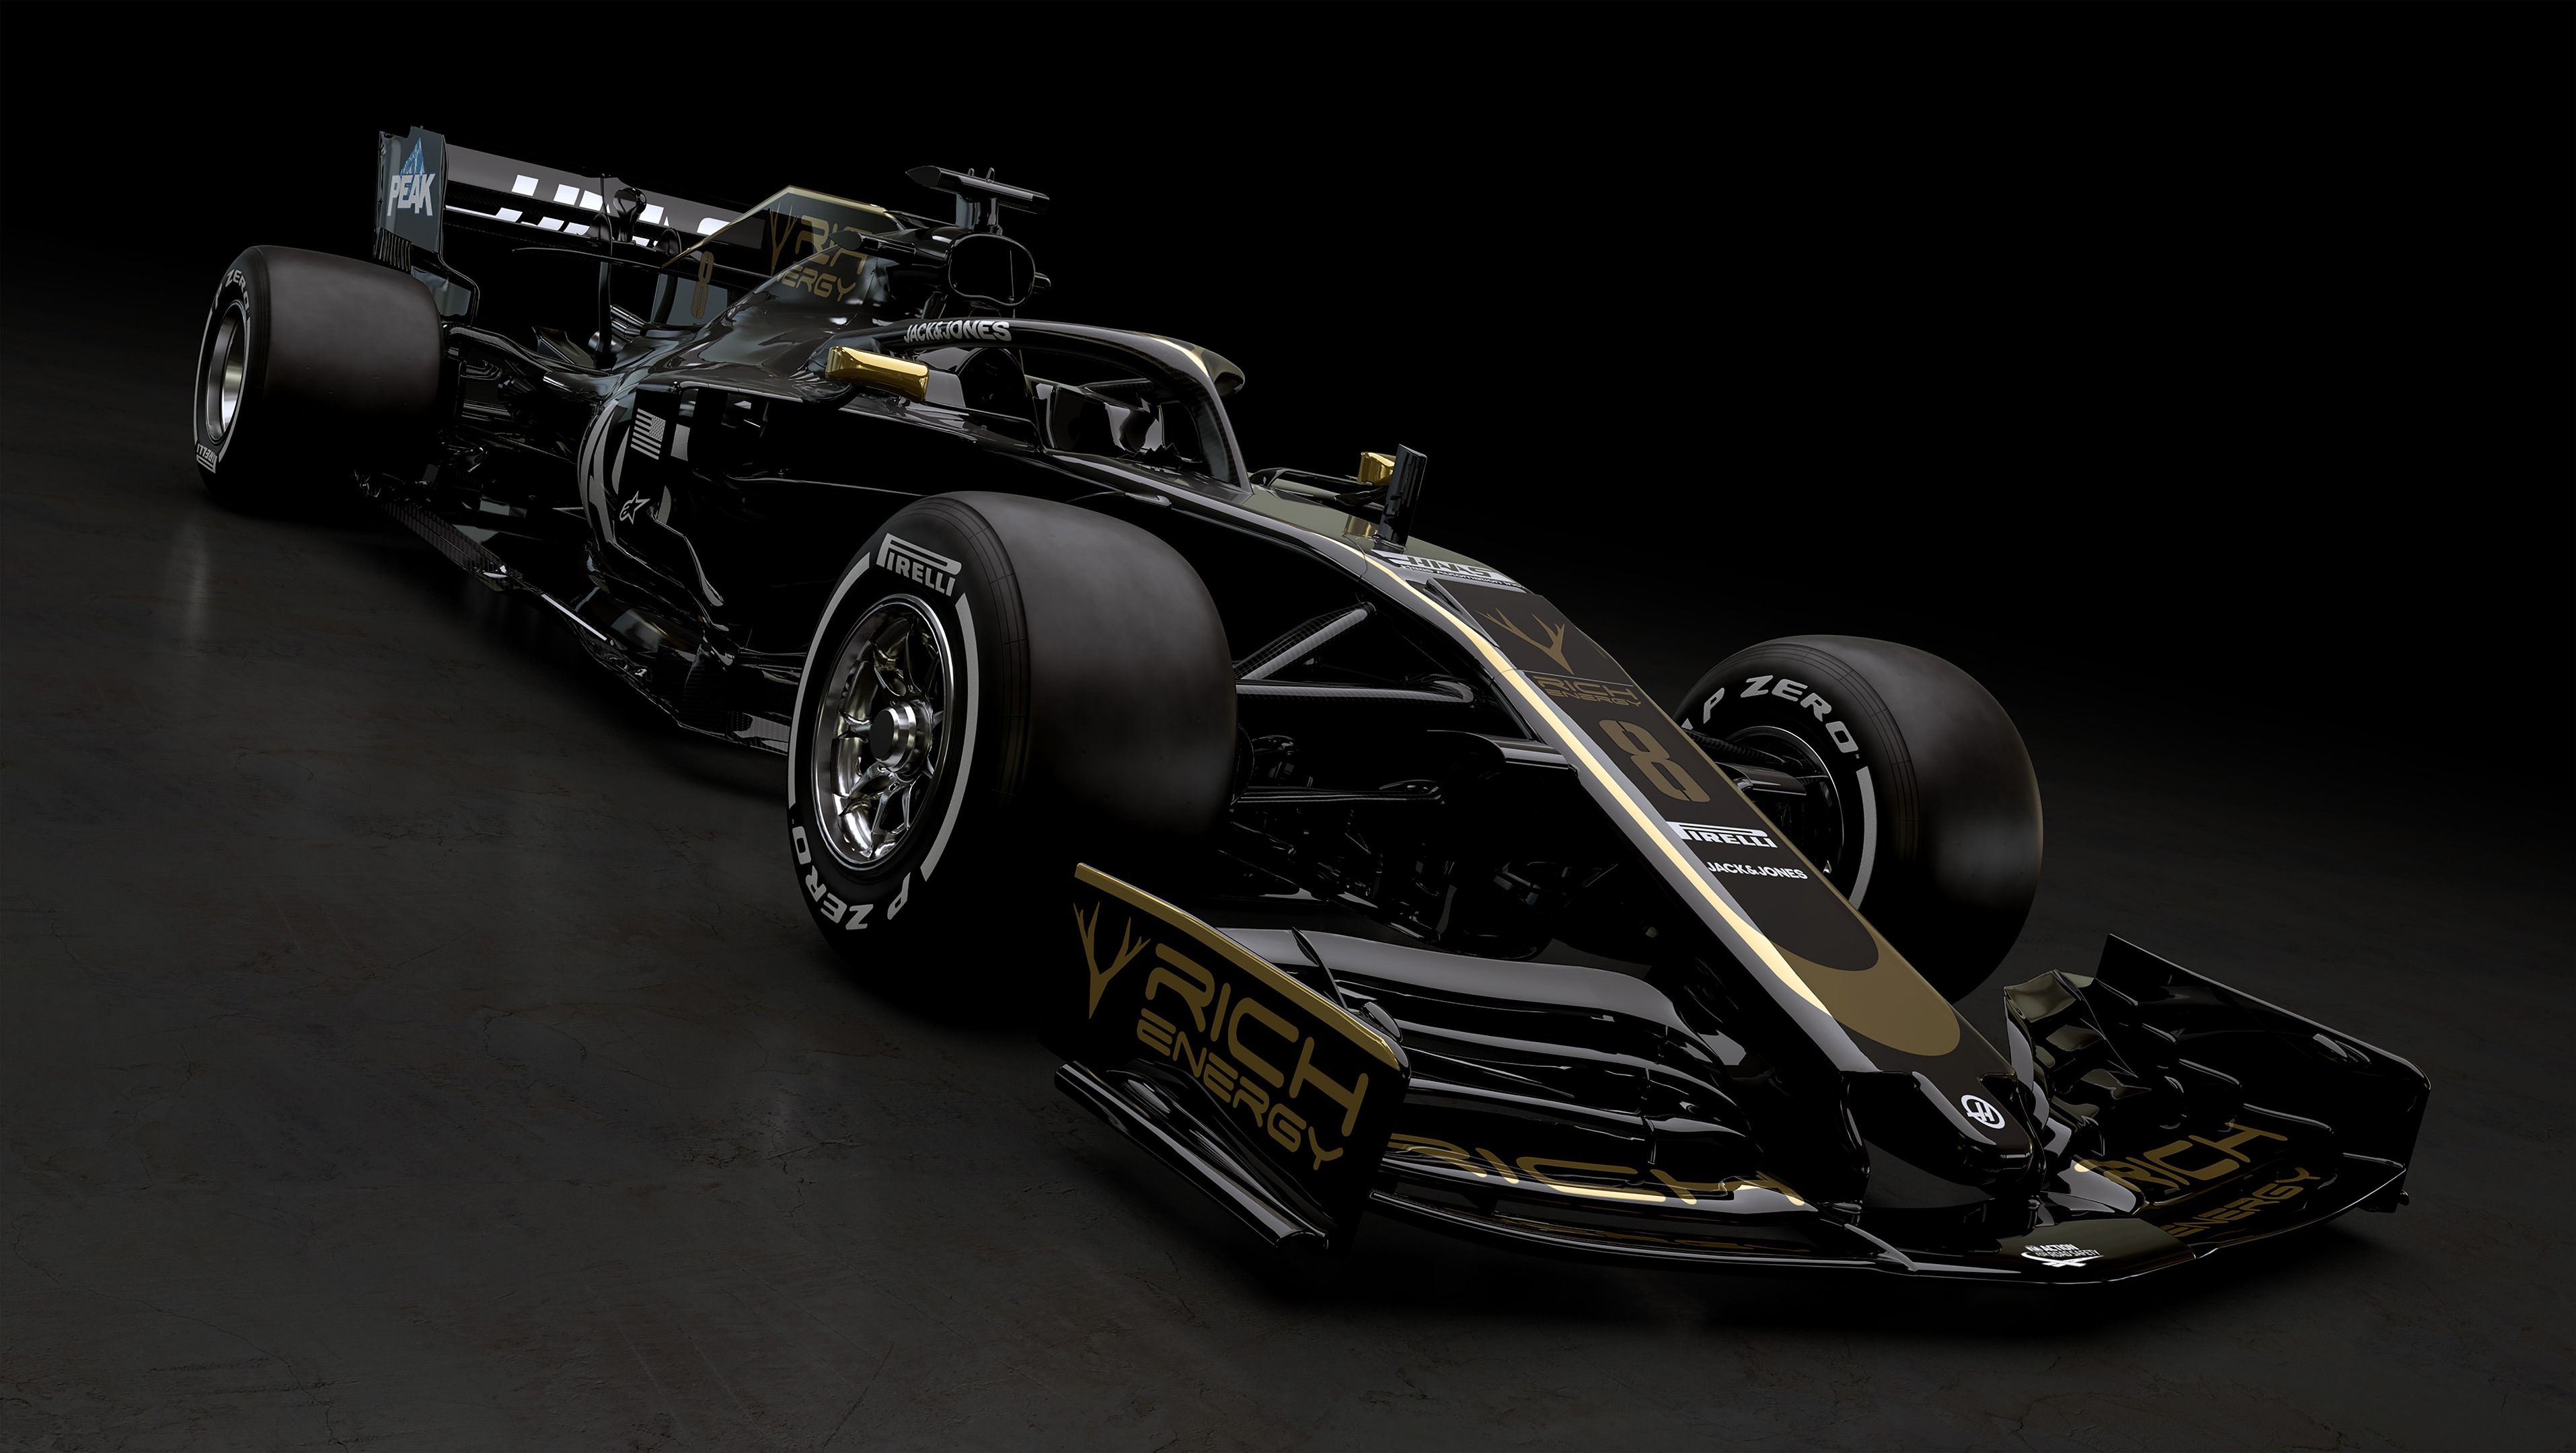 F1 2019 RICH ENERGY HAAS F1 TEAM VF19 - side front-face / profil avant